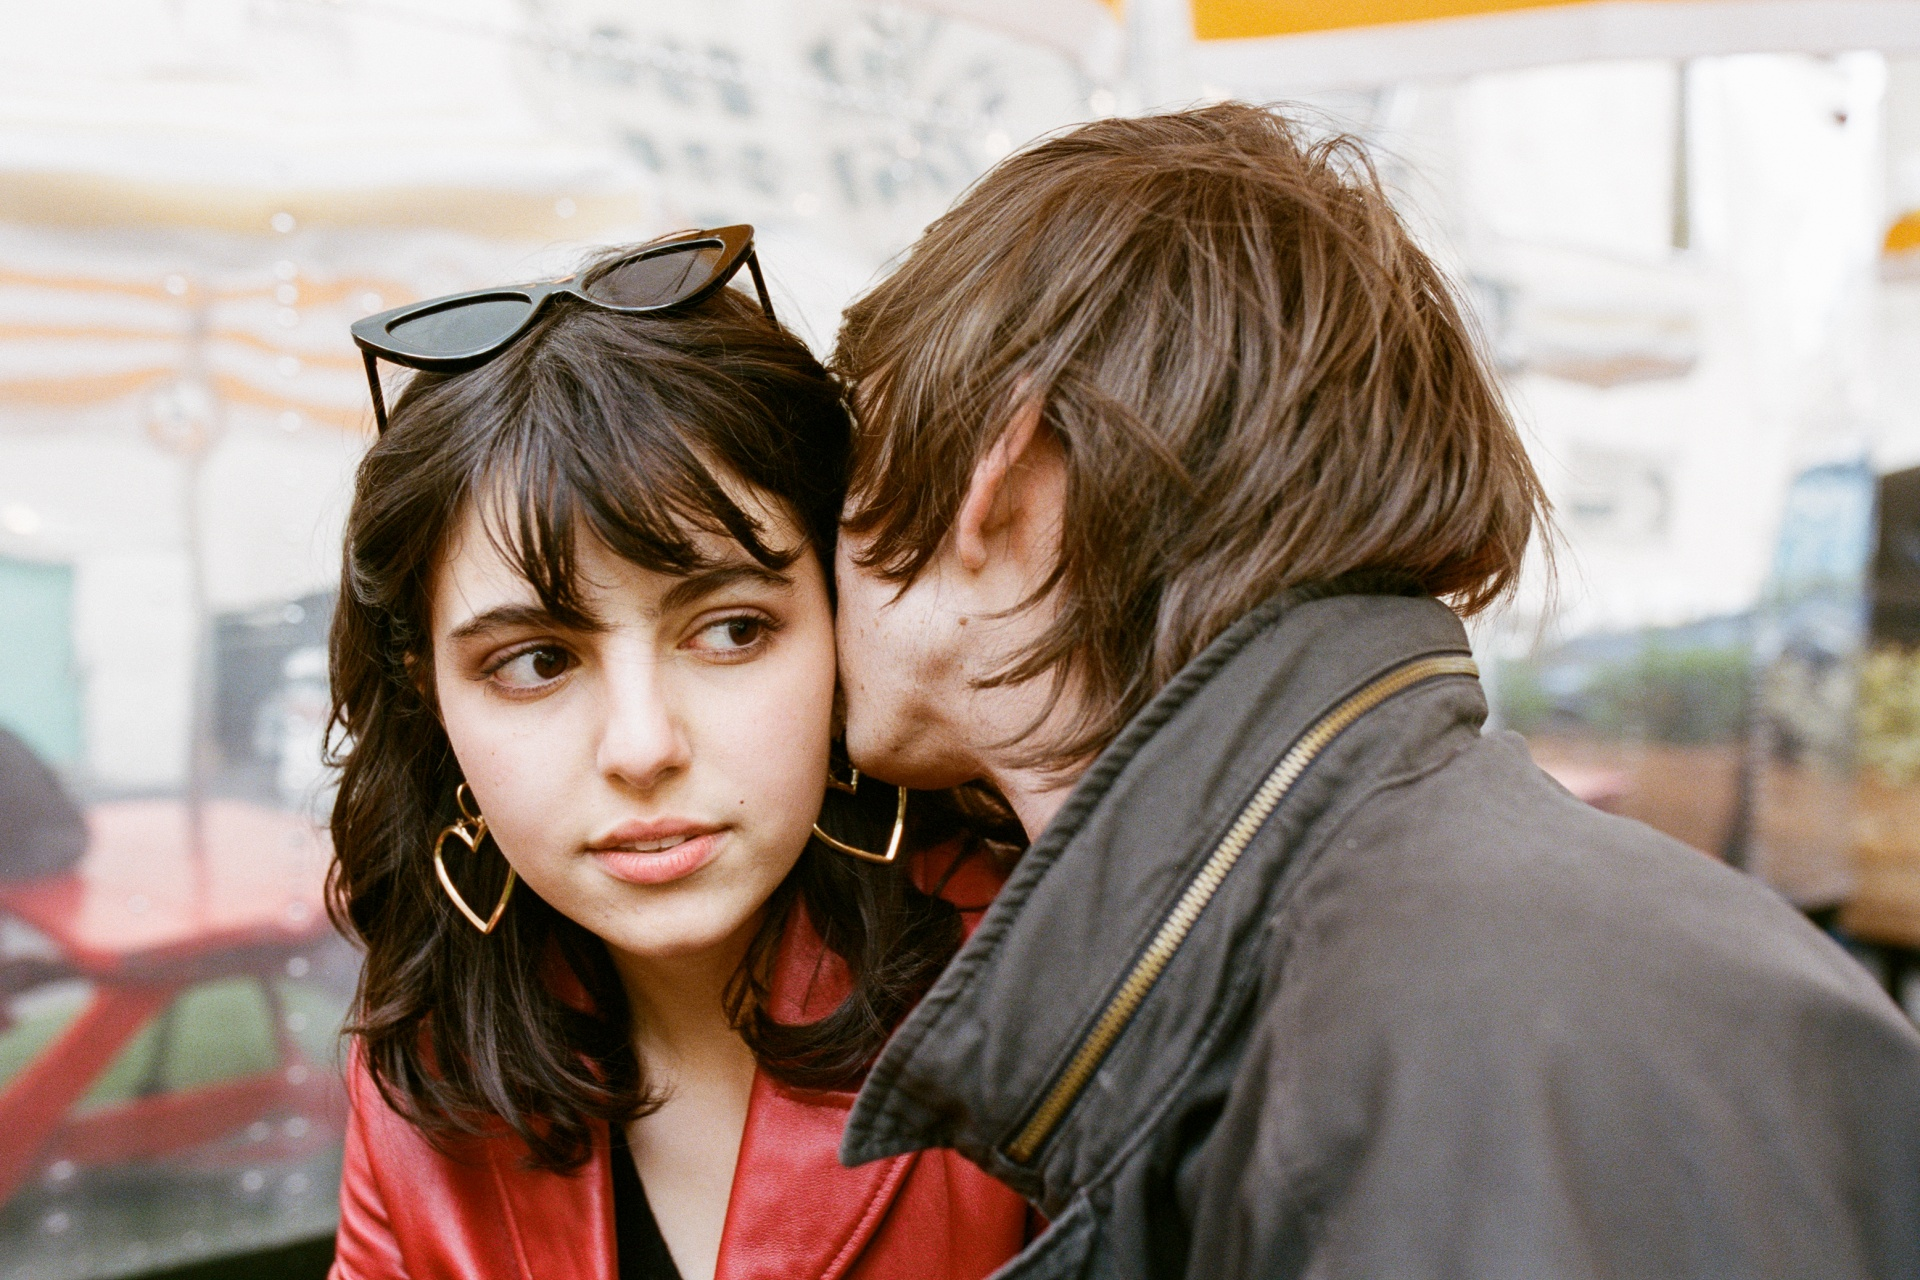 The Three Types Of Chemistry You Absolutely Have To Have For It To Be True Love